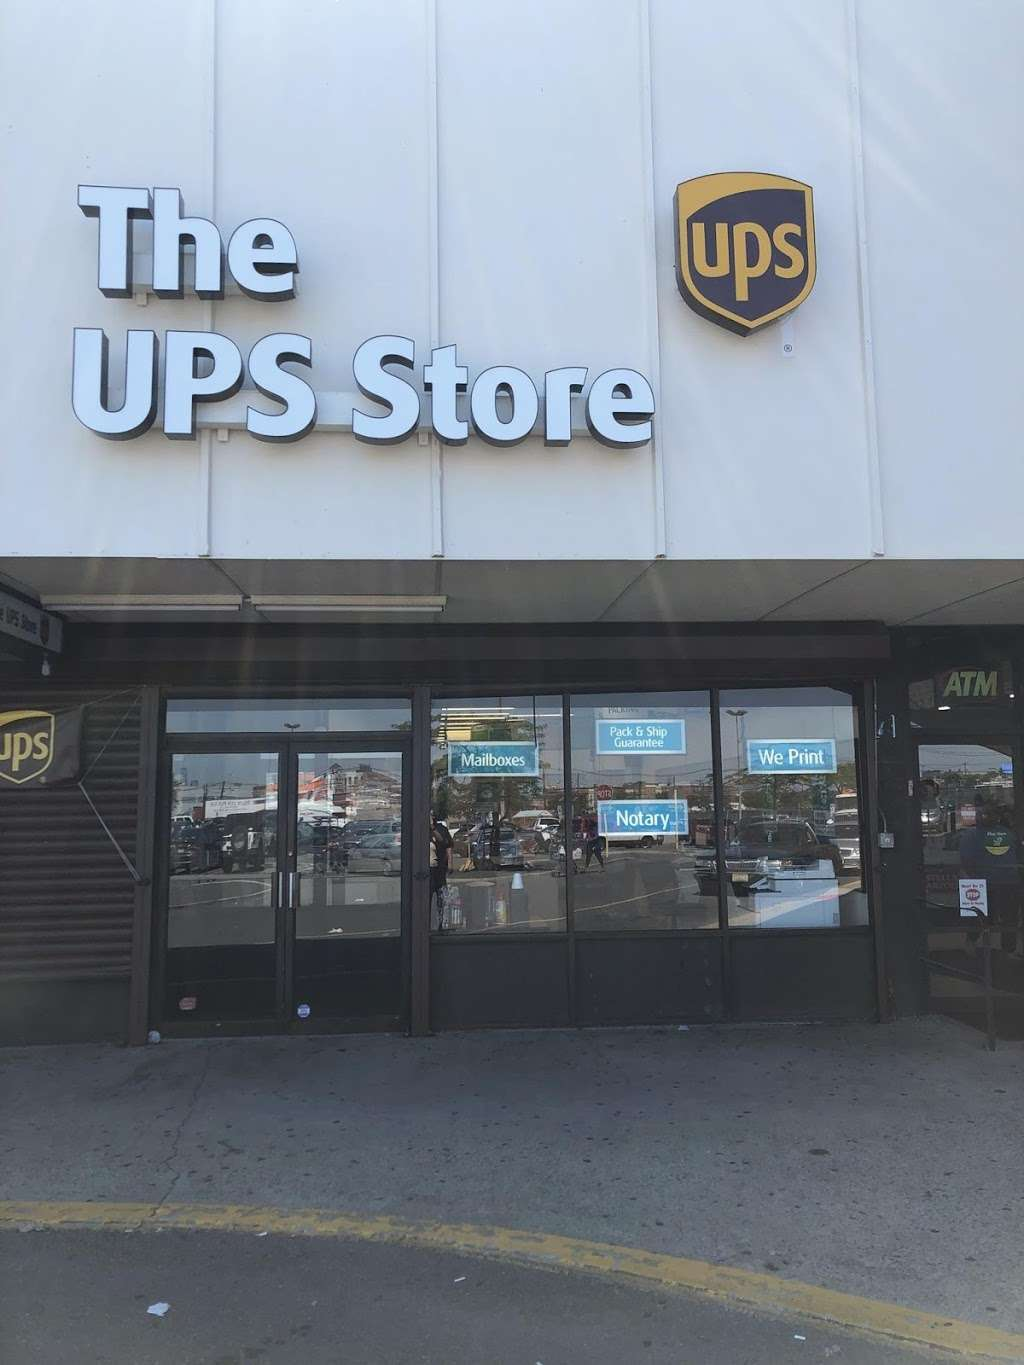 UPS STORE - shopping mall  | Photo 1 of 1 | Address: 321 NJ-440, Jersey City, NJ 07305, USA | Phone: (521) 225-3393